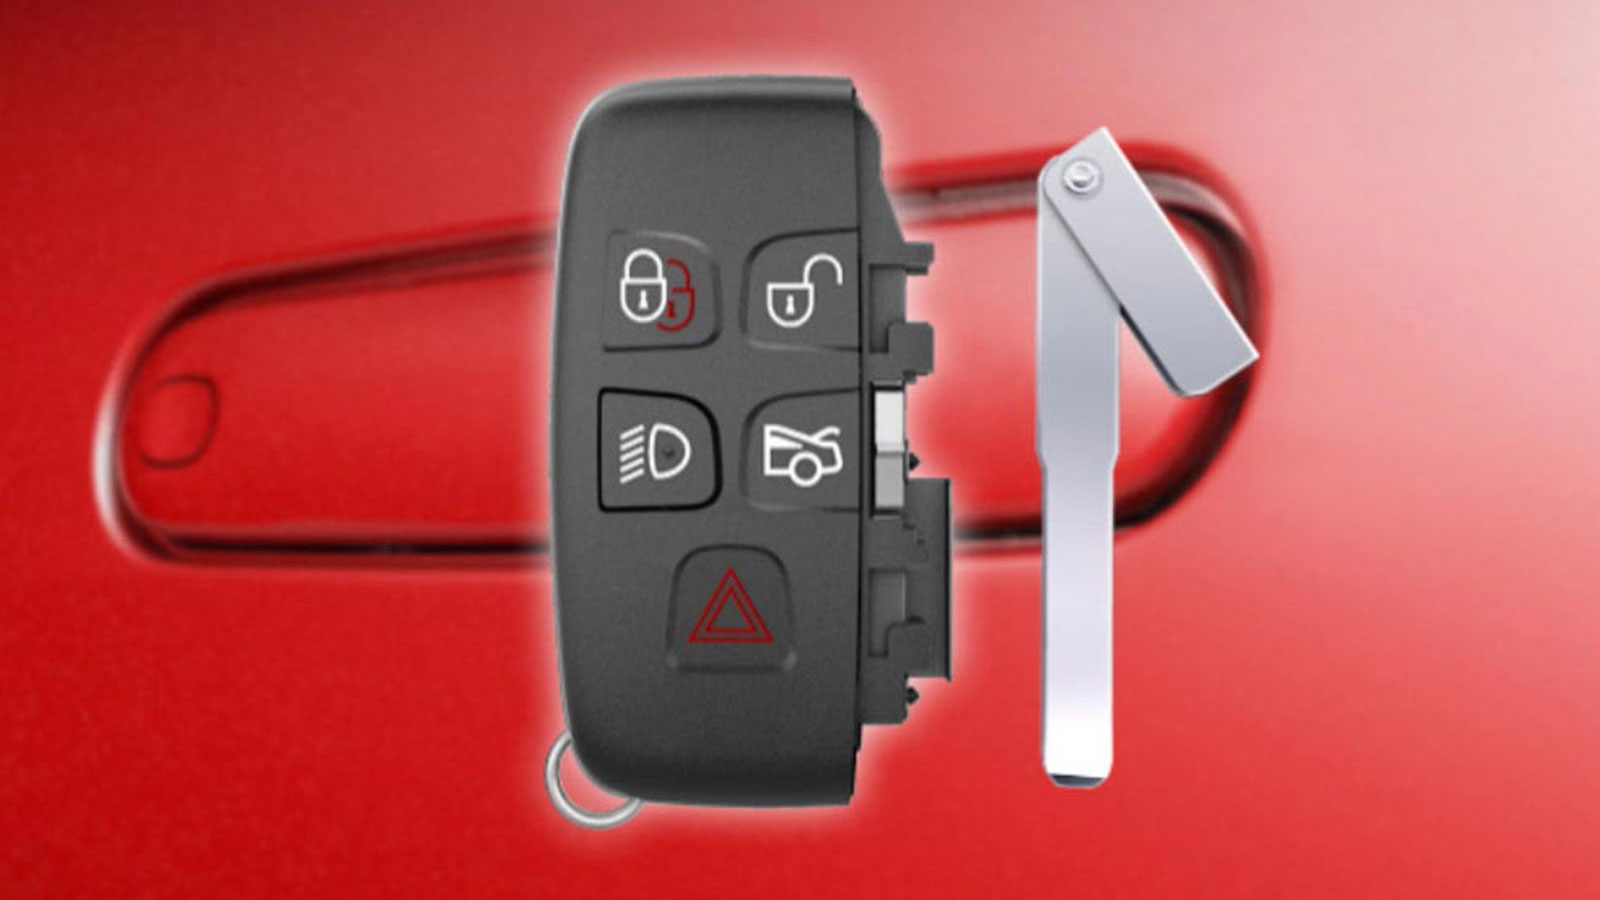 Jaguar Smart Key With Emergency Keyblade Detached